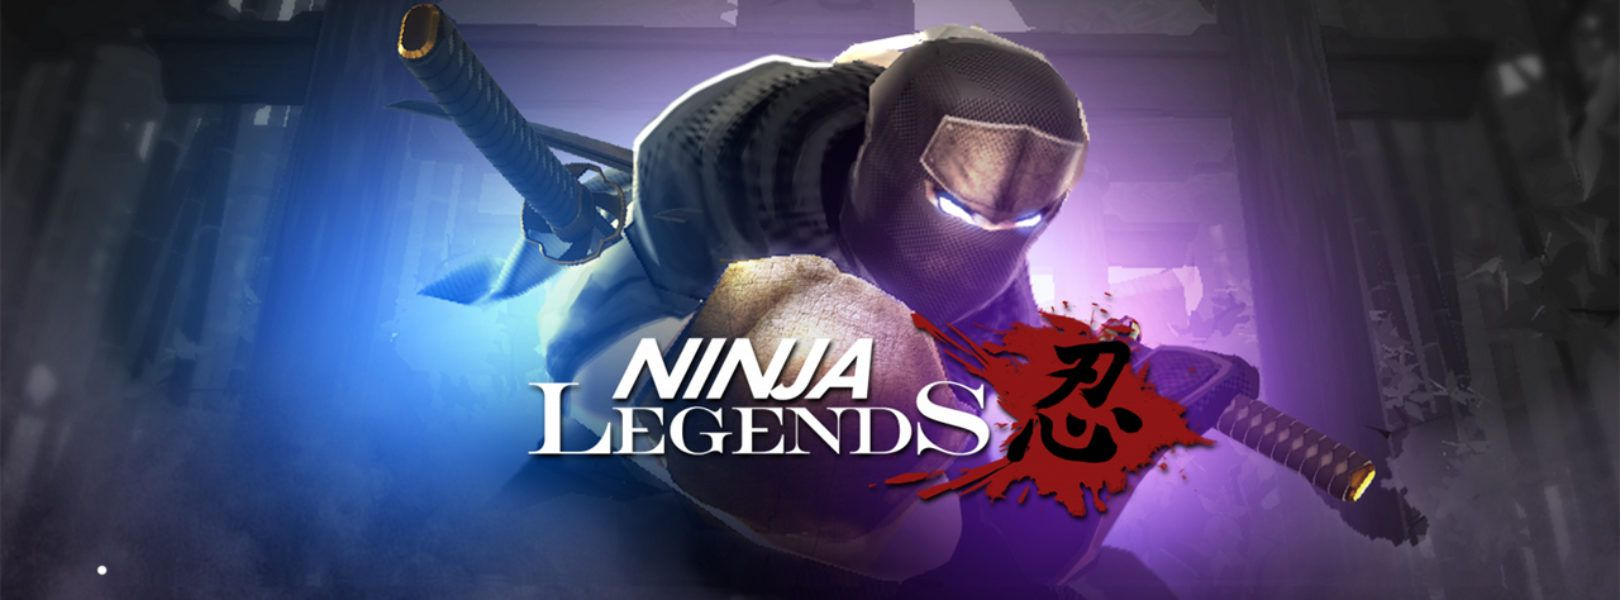 Ninja Simulator 2 Roblox Codes Wiki Ninja Legends Codes In 2020 Coding Game Codes Legend